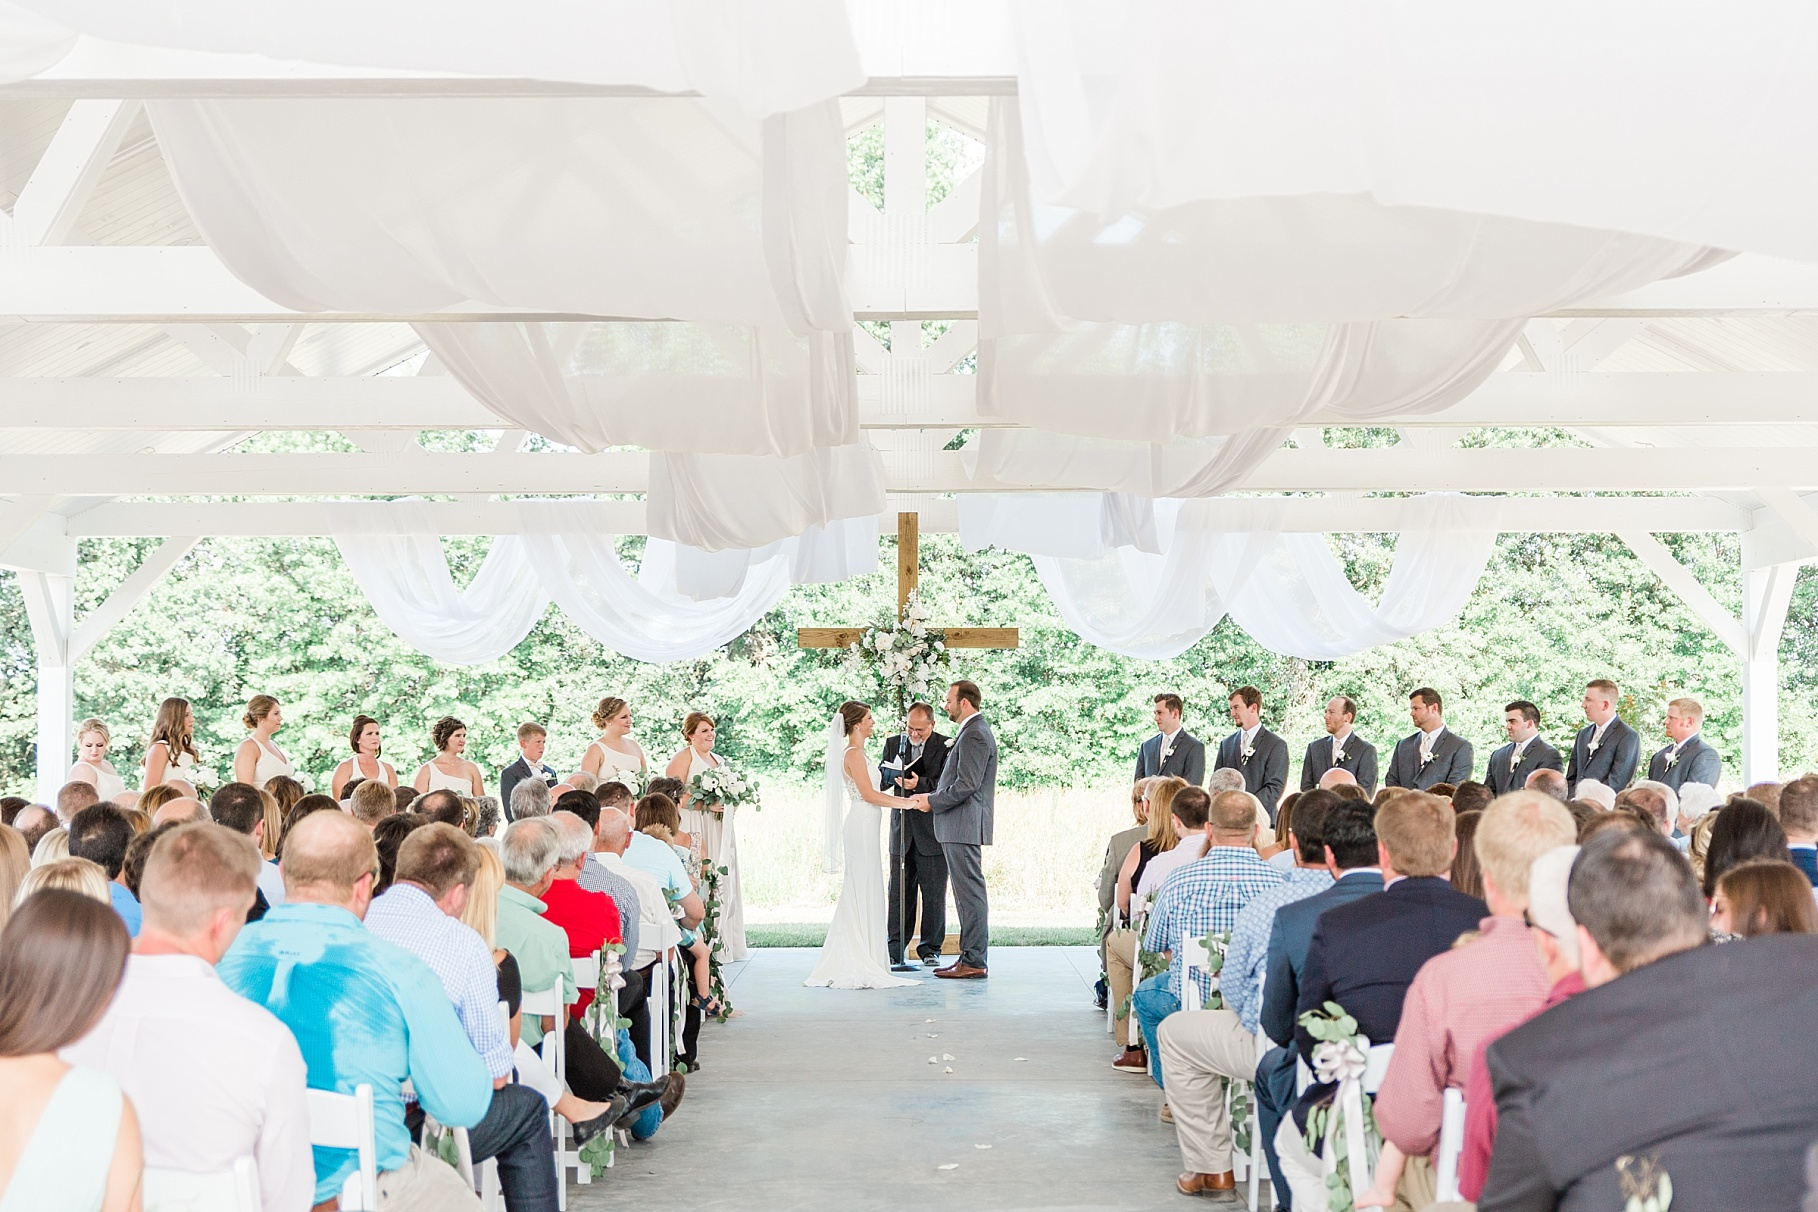 Wedding Ceremony with Confetti Pop at Emerson Fields Venue by Associate Wedding Photographer for Kelsi Kliethermes Photography Best Columbia Missouri and Maui Hawaii Wedding Photographer_0016.jpg